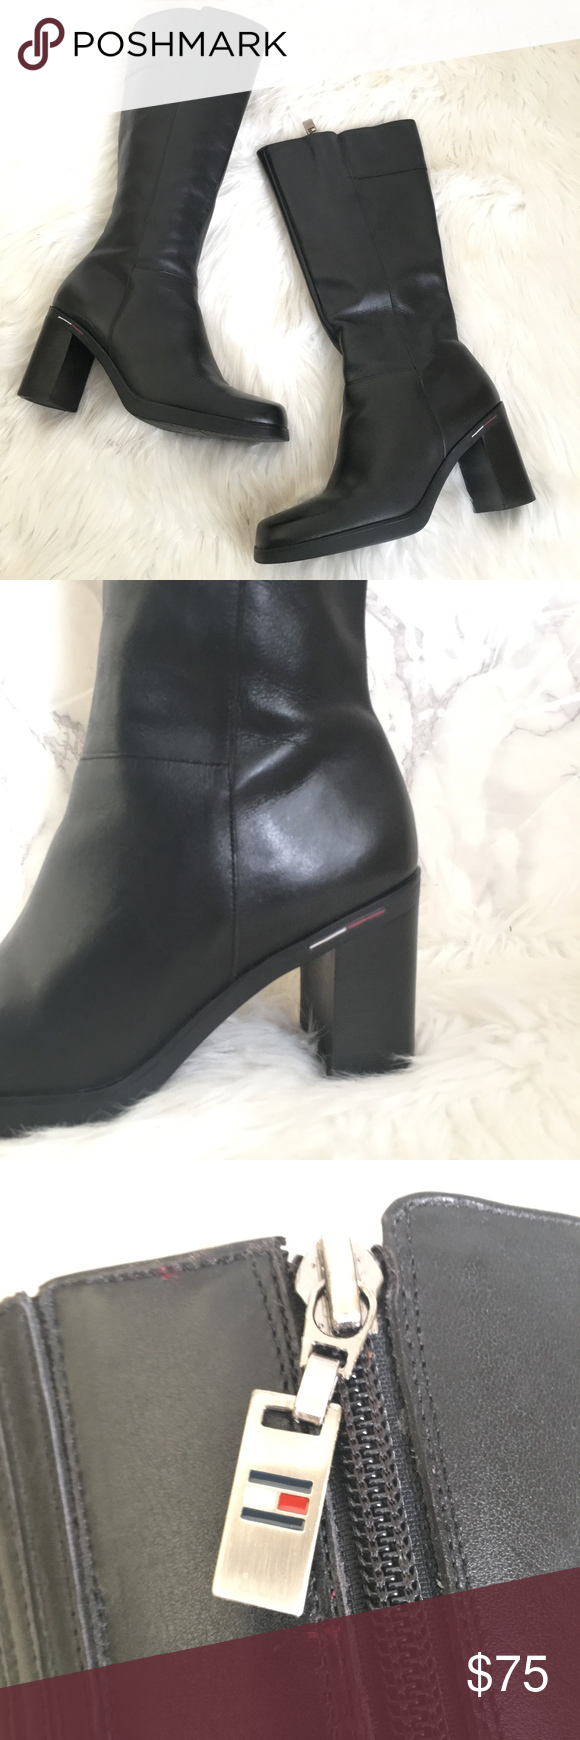 338e5f895 Vintage Tommy Hilfiger Square Toe Knee High Boots These boots are in great  condition. They